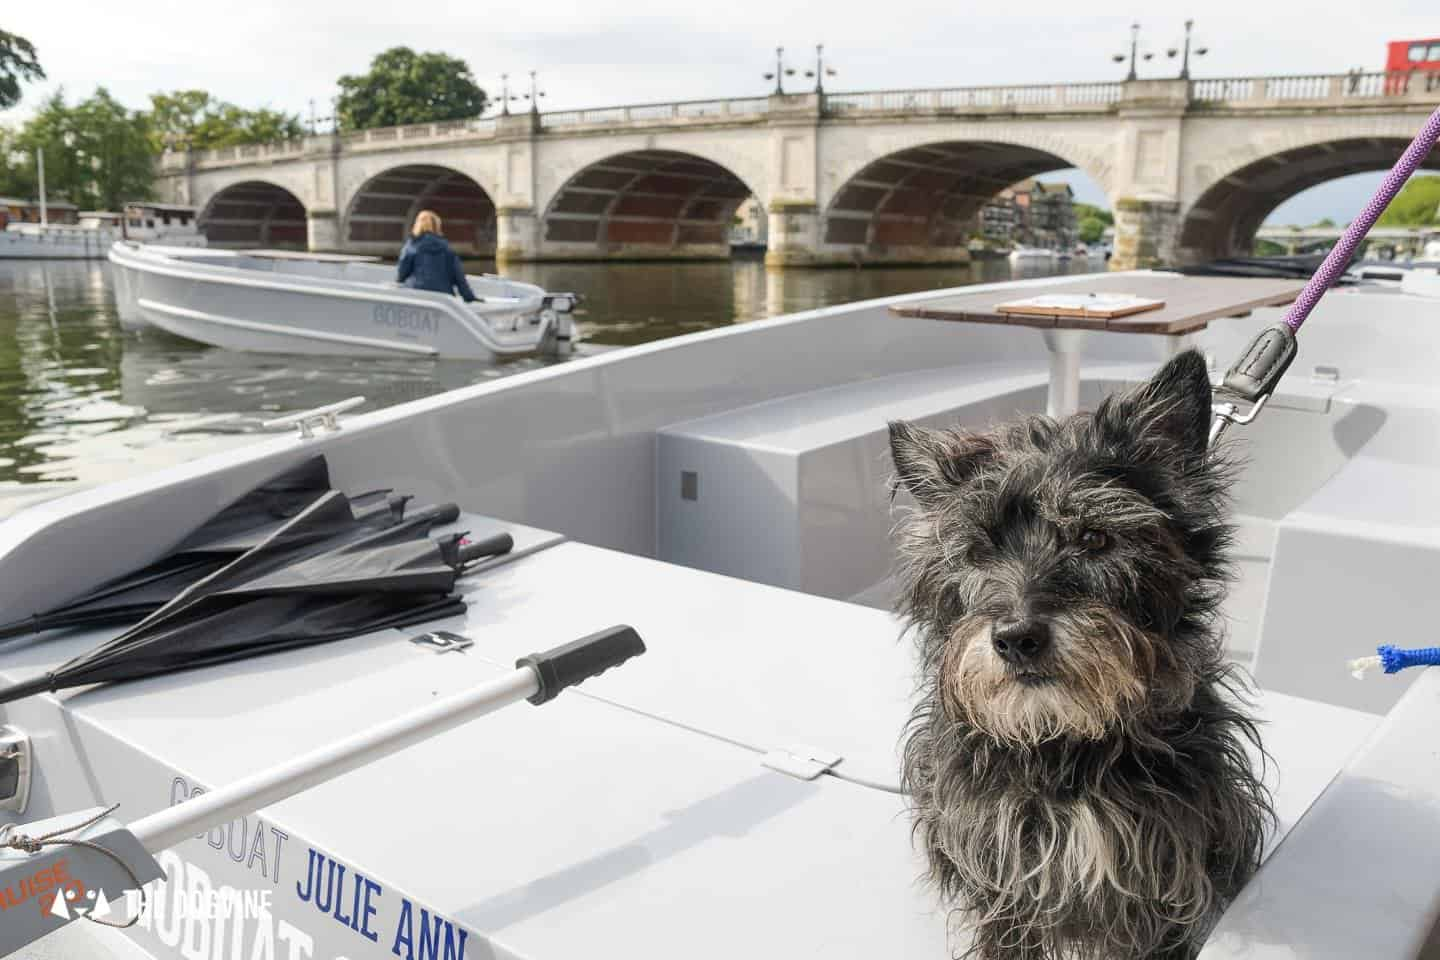 Dog-friendly Go Boat Kingston Upon Thames 29